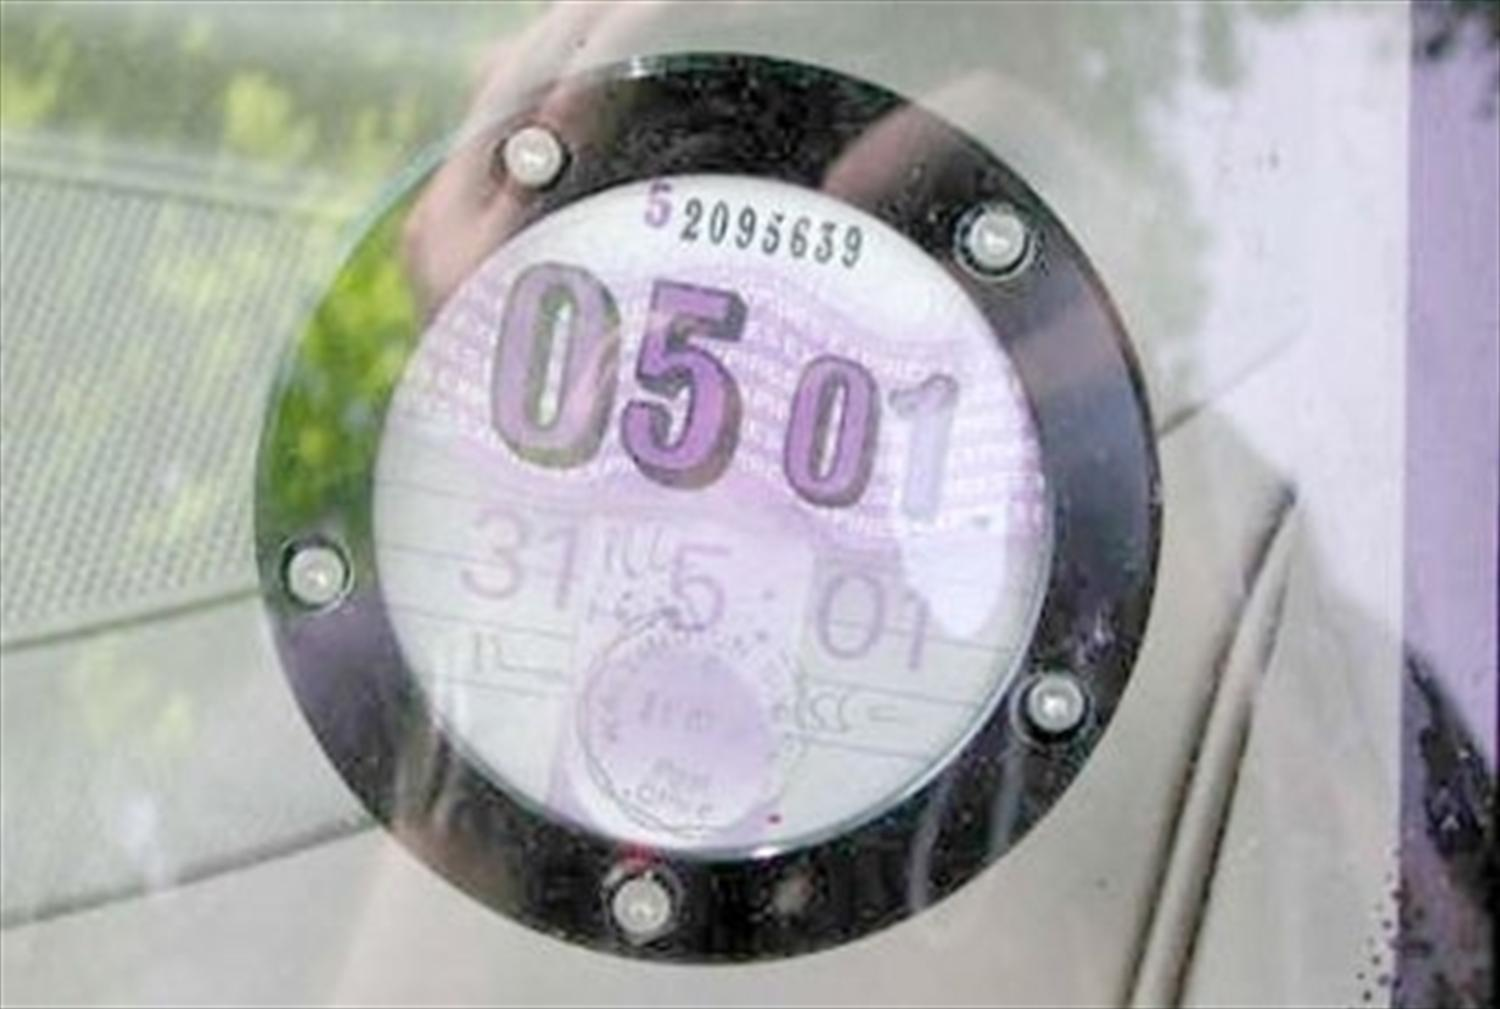 How much is my road tax?